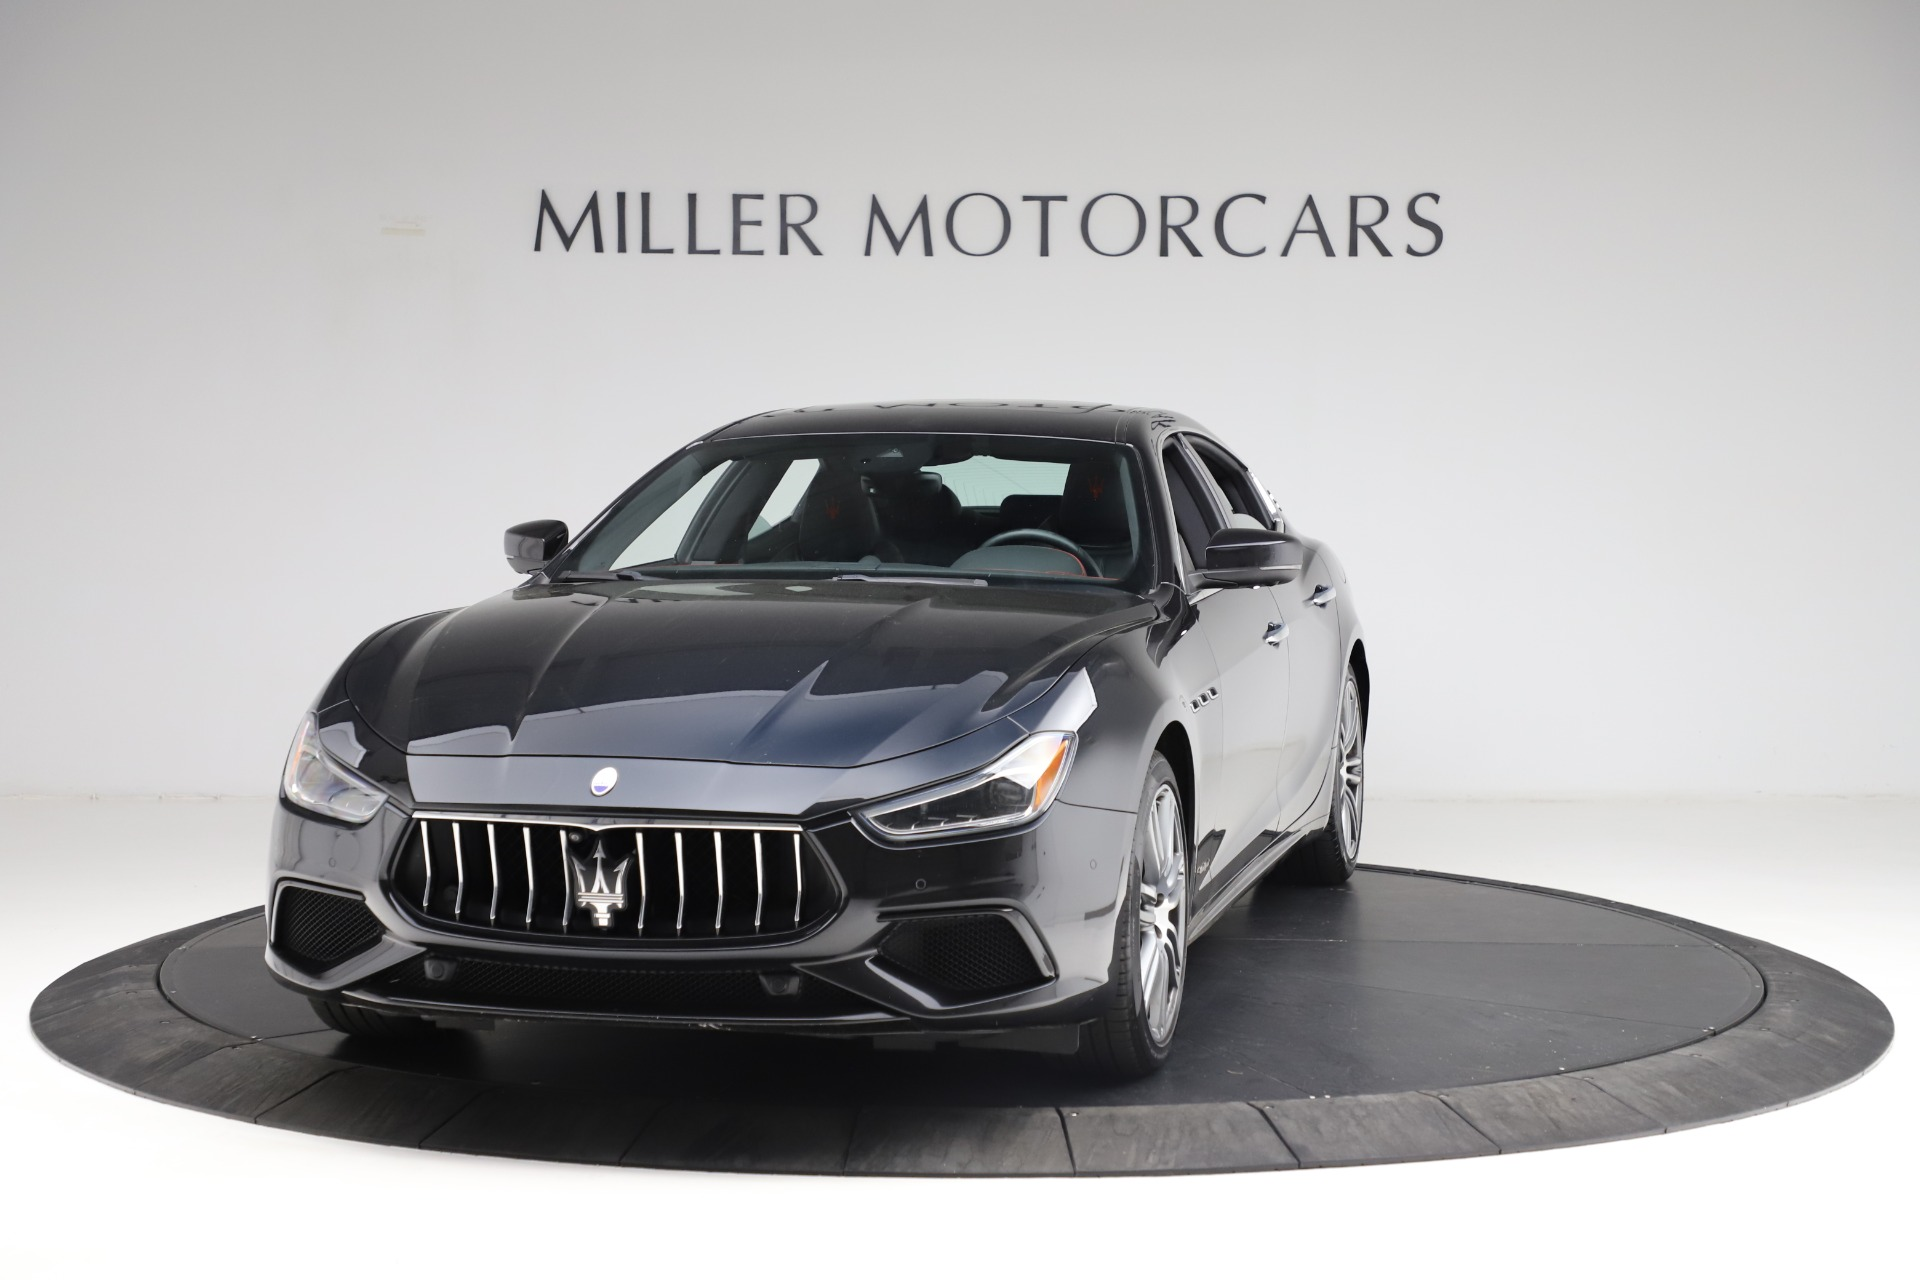 Used 2018 Maserati Ghibli S Q4 Gransport for sale $55,900 at Rolls-Royce Motor Cars Greenwich in Greenwich CT 06830 1